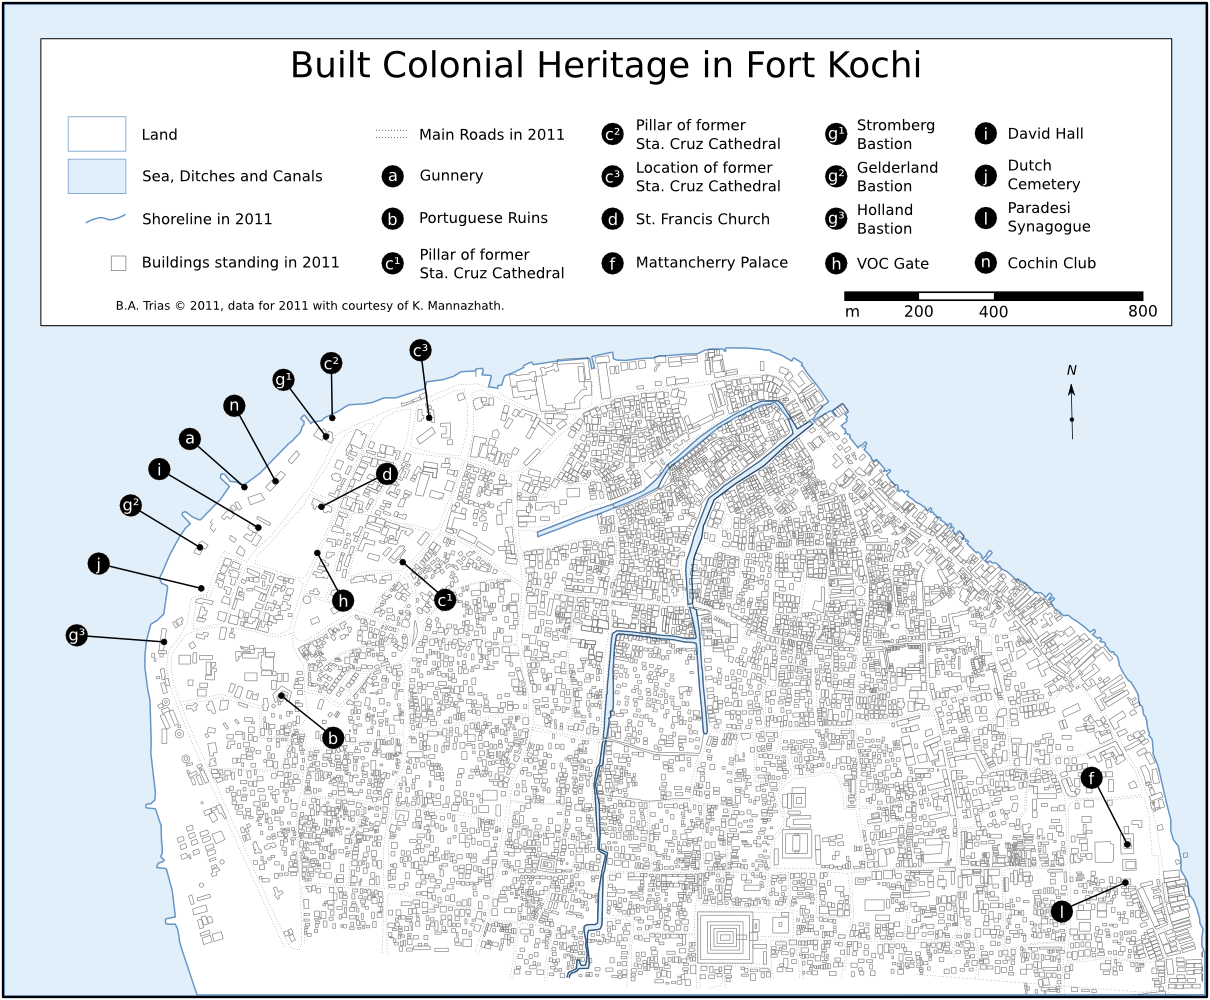 Built Colonial Heritage in Kochi